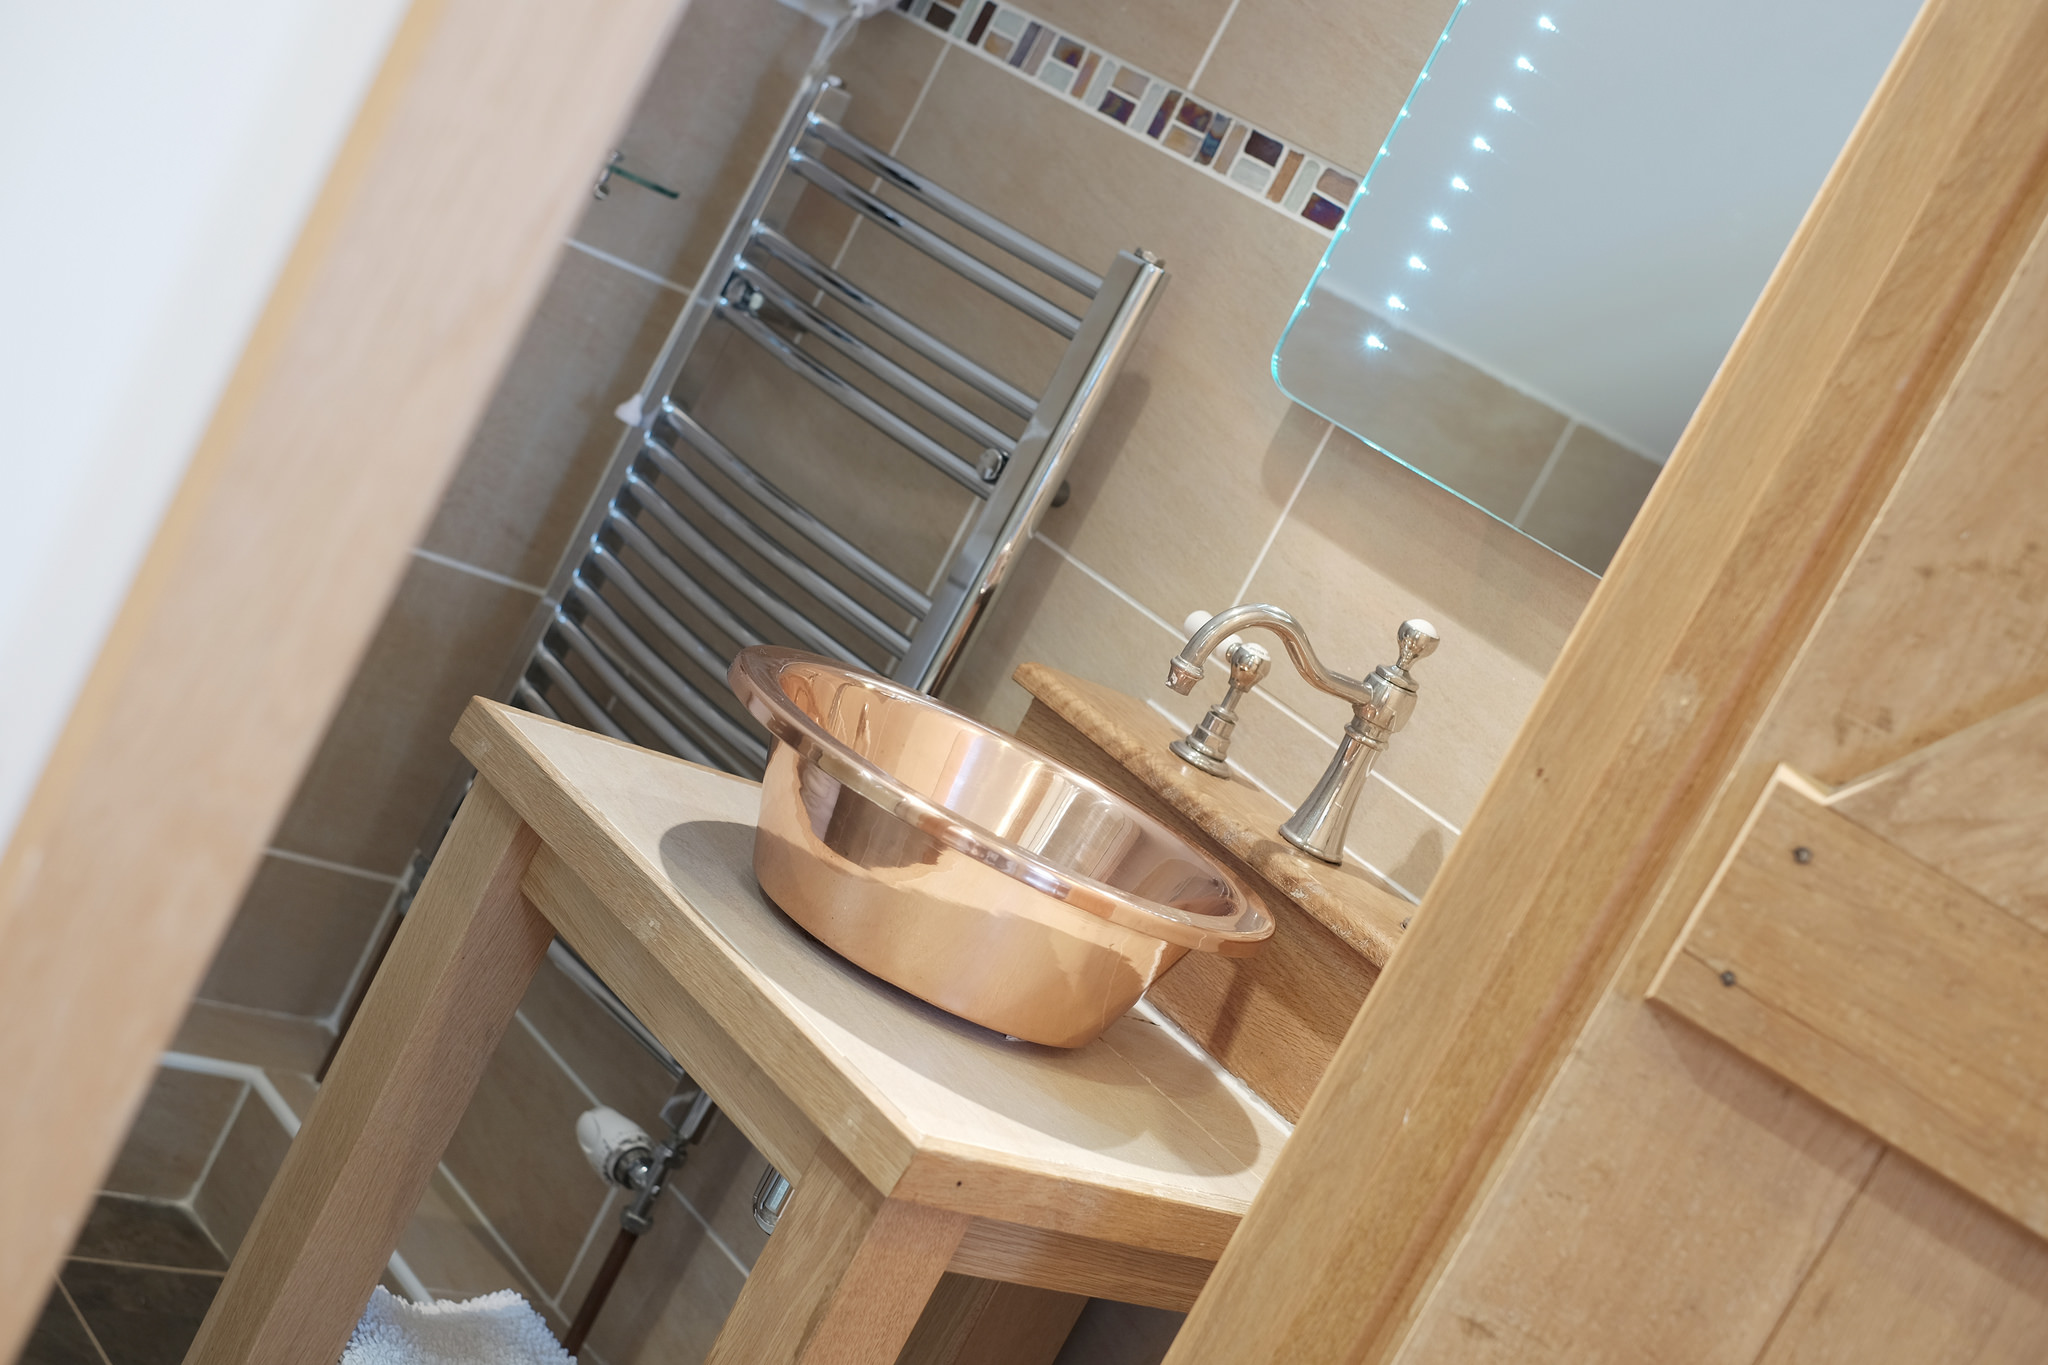 En-suite bathroom with luxury copper basin